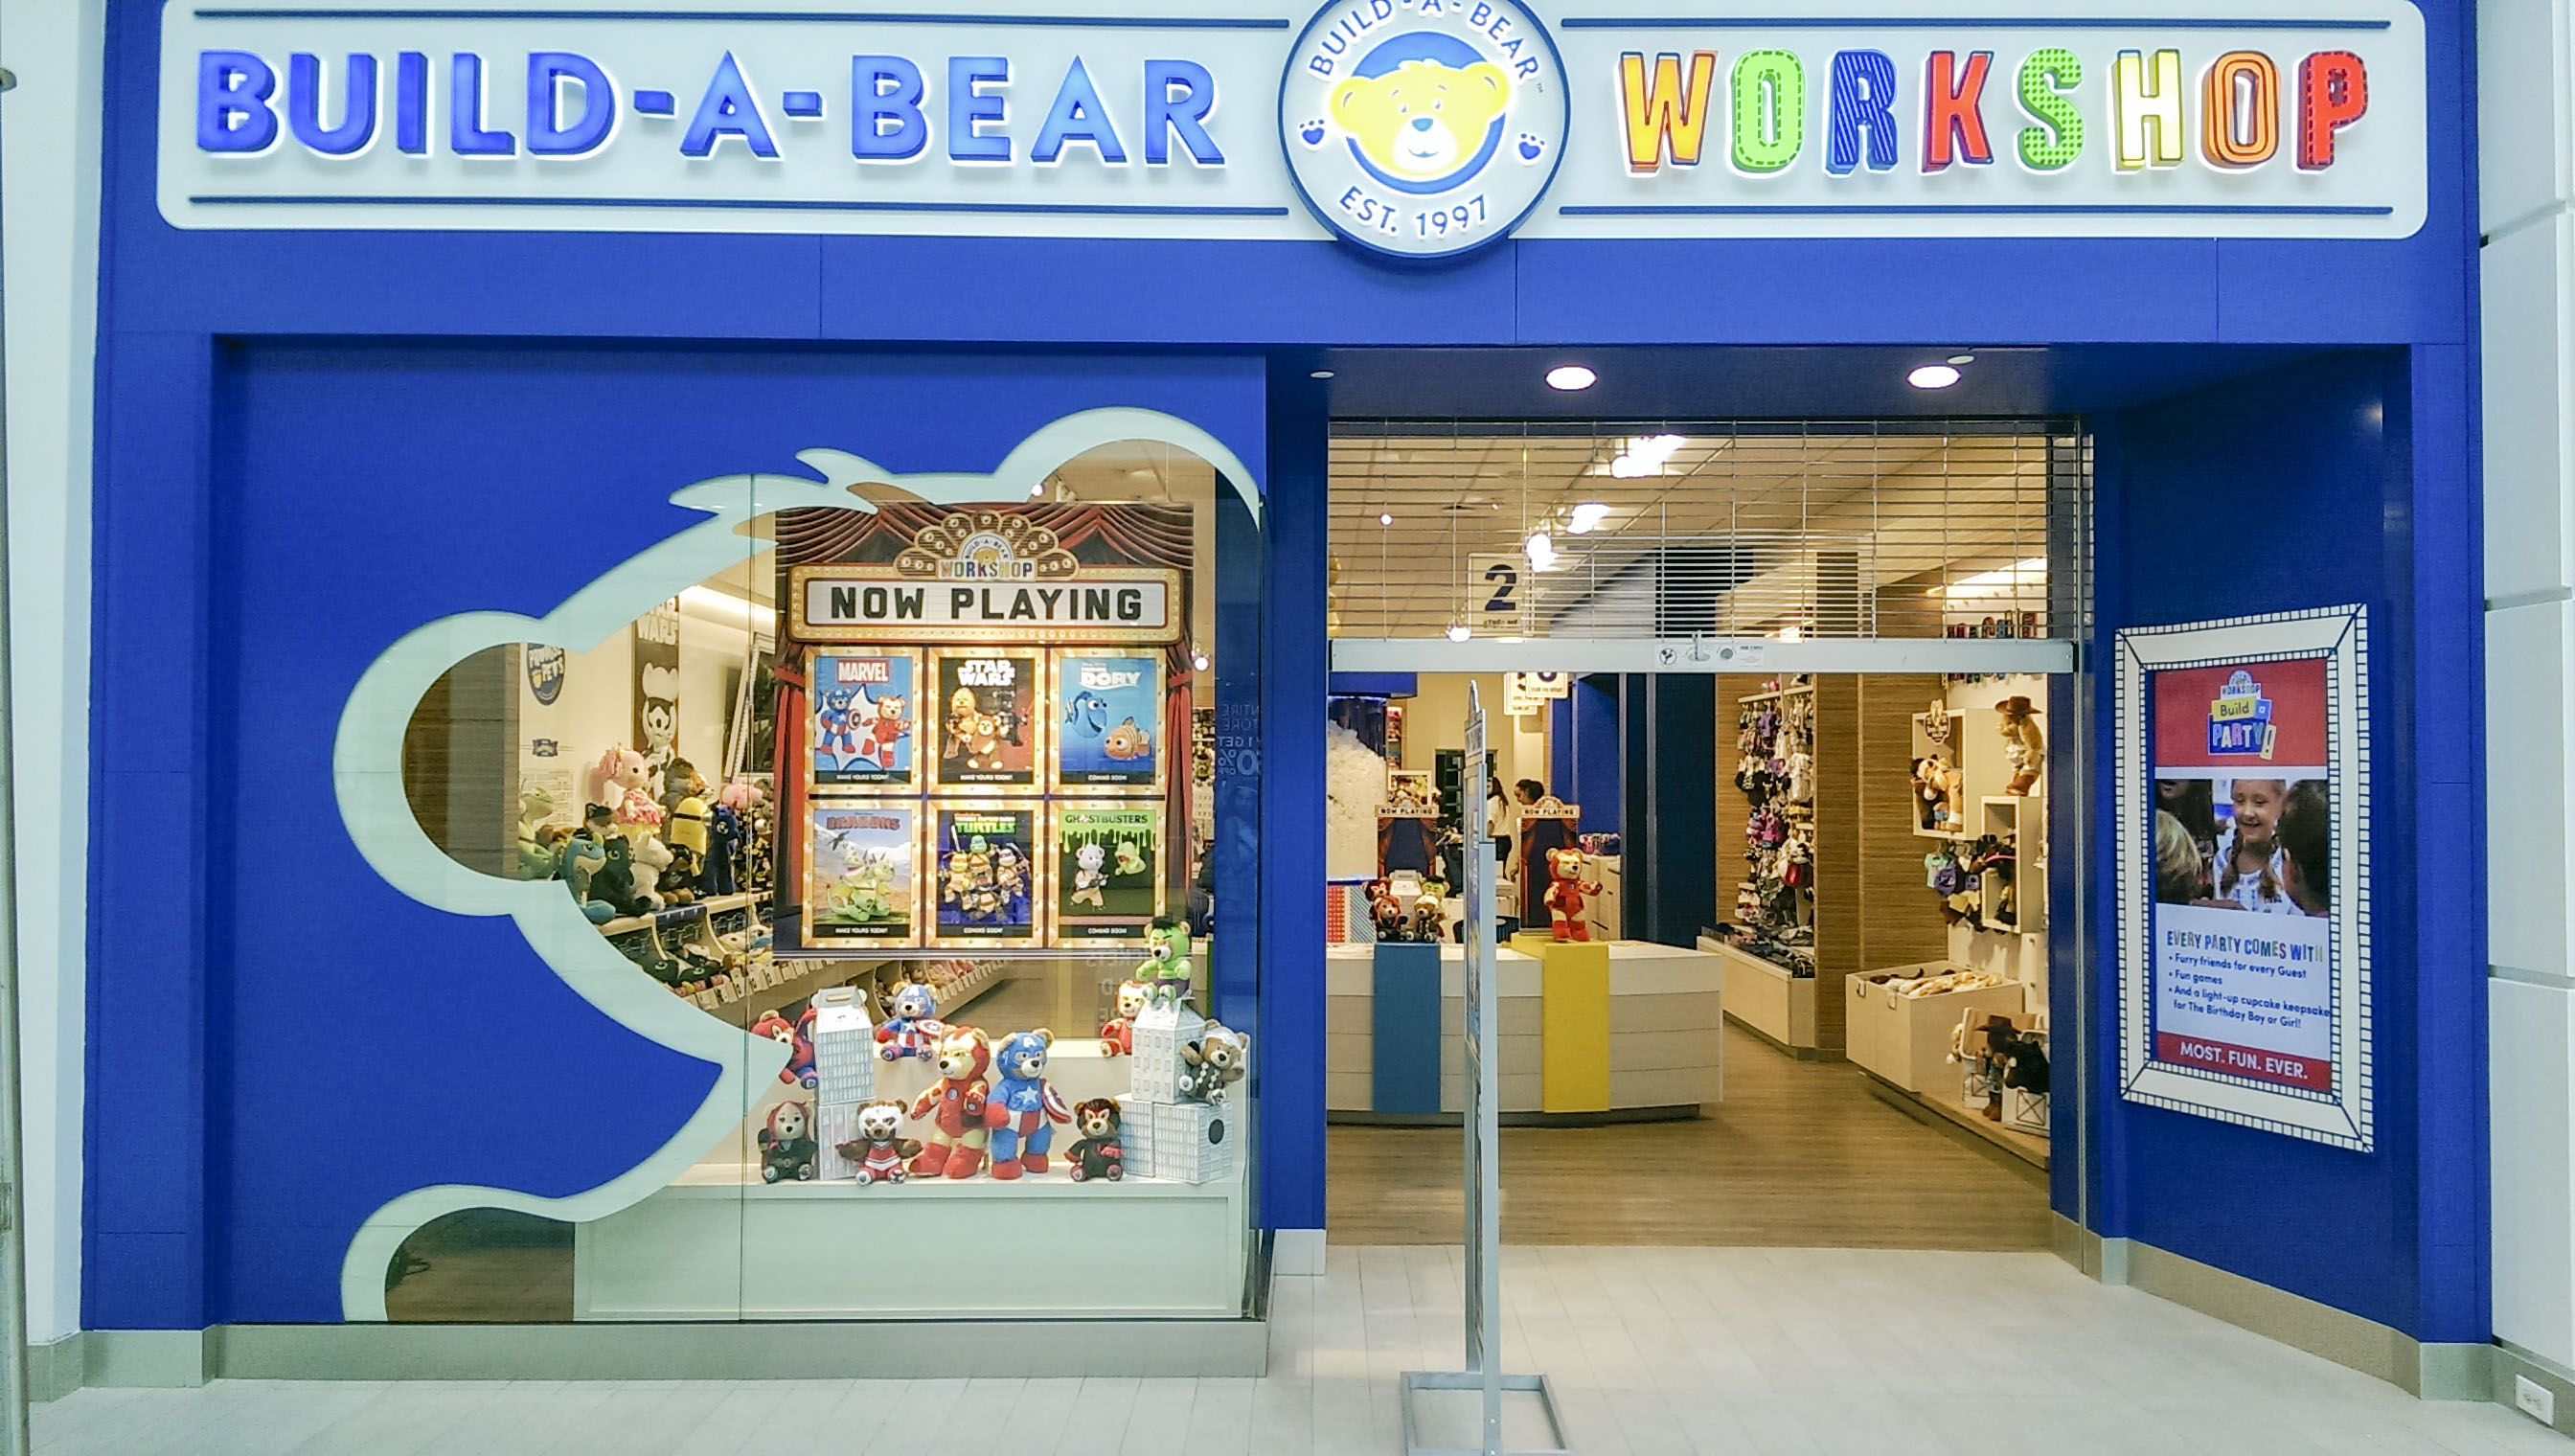 Build-A-Bear Workshop (Menlo Park)